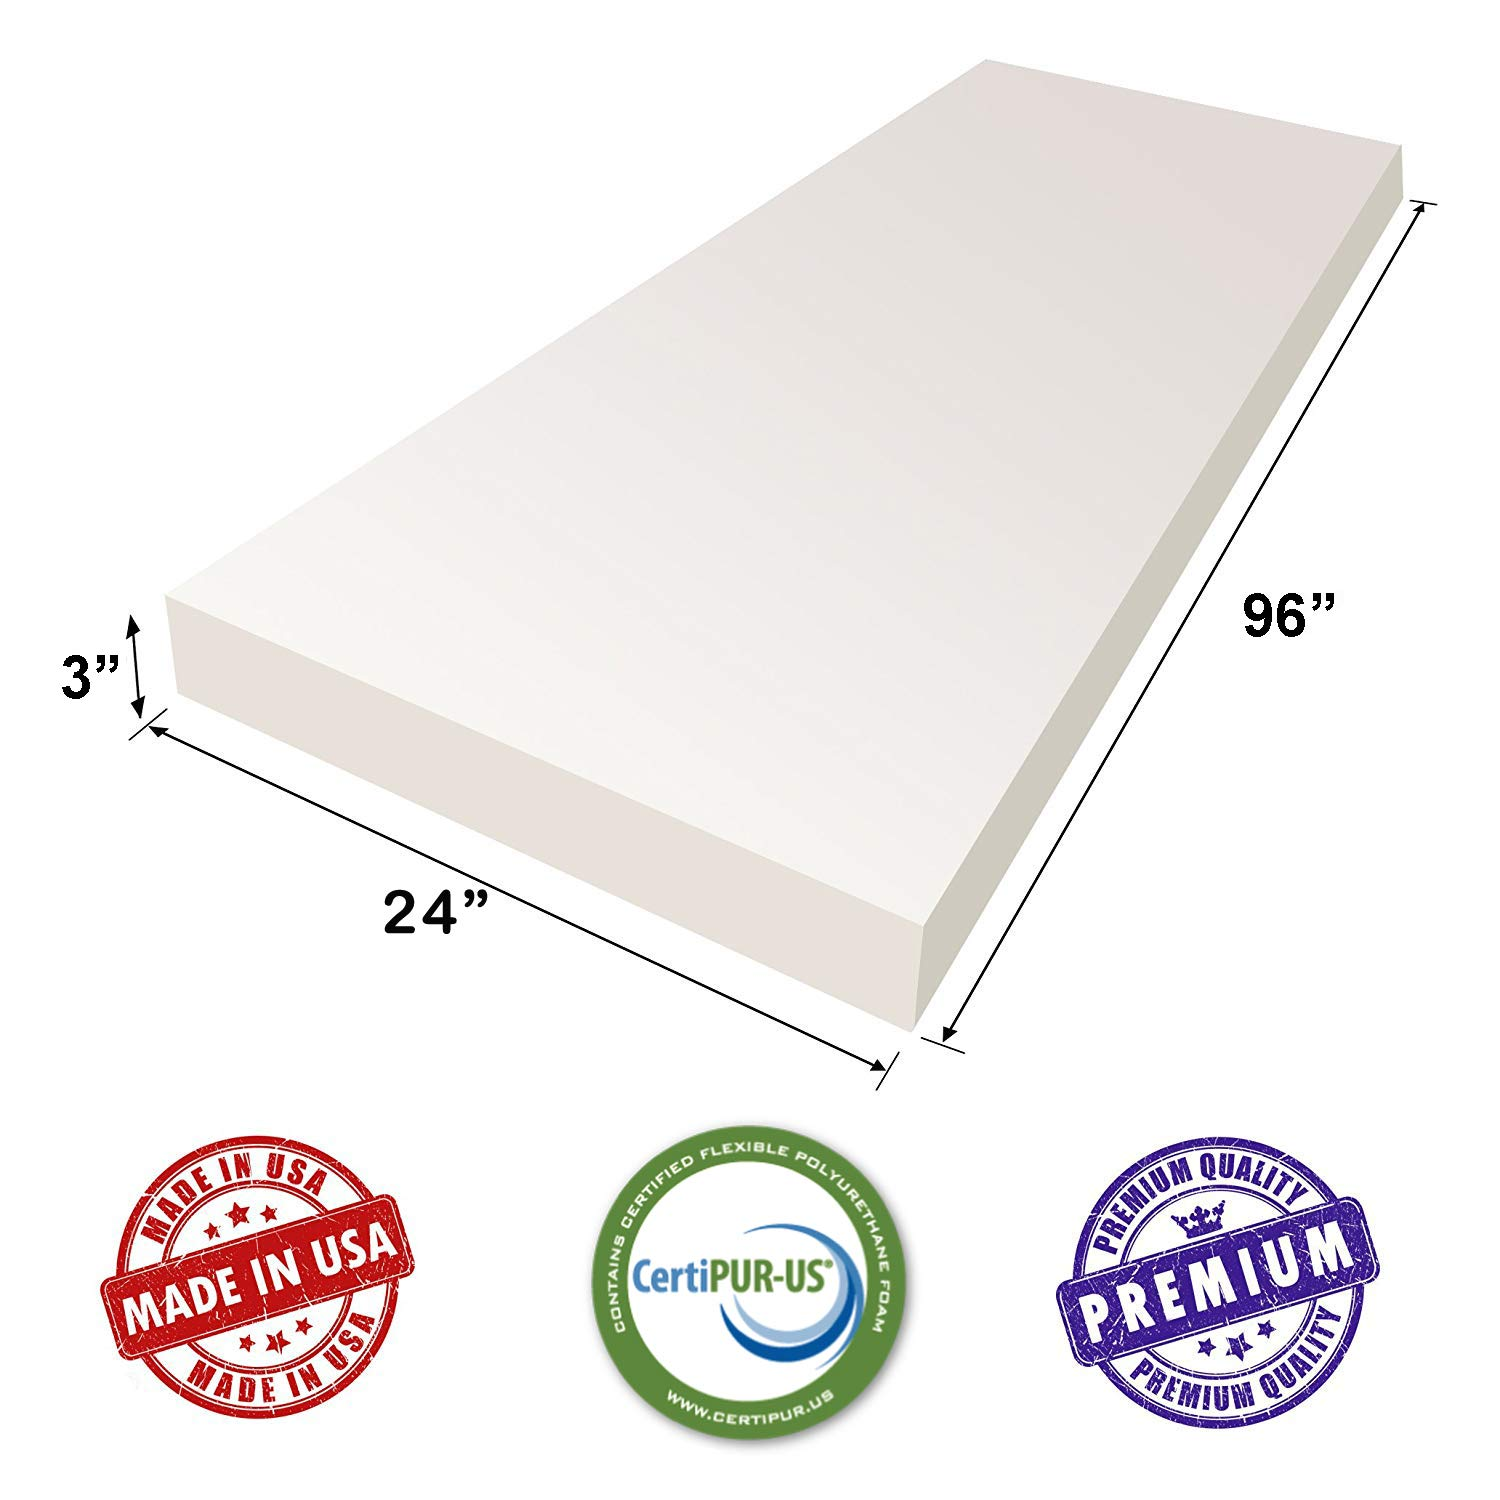 Upholstery Sheet, Foam Padding /& Seat Replacement 3 H X 24 W X 96 L CertiPUR-US Certified Upholstery Foam Cushion AK TRADING CO